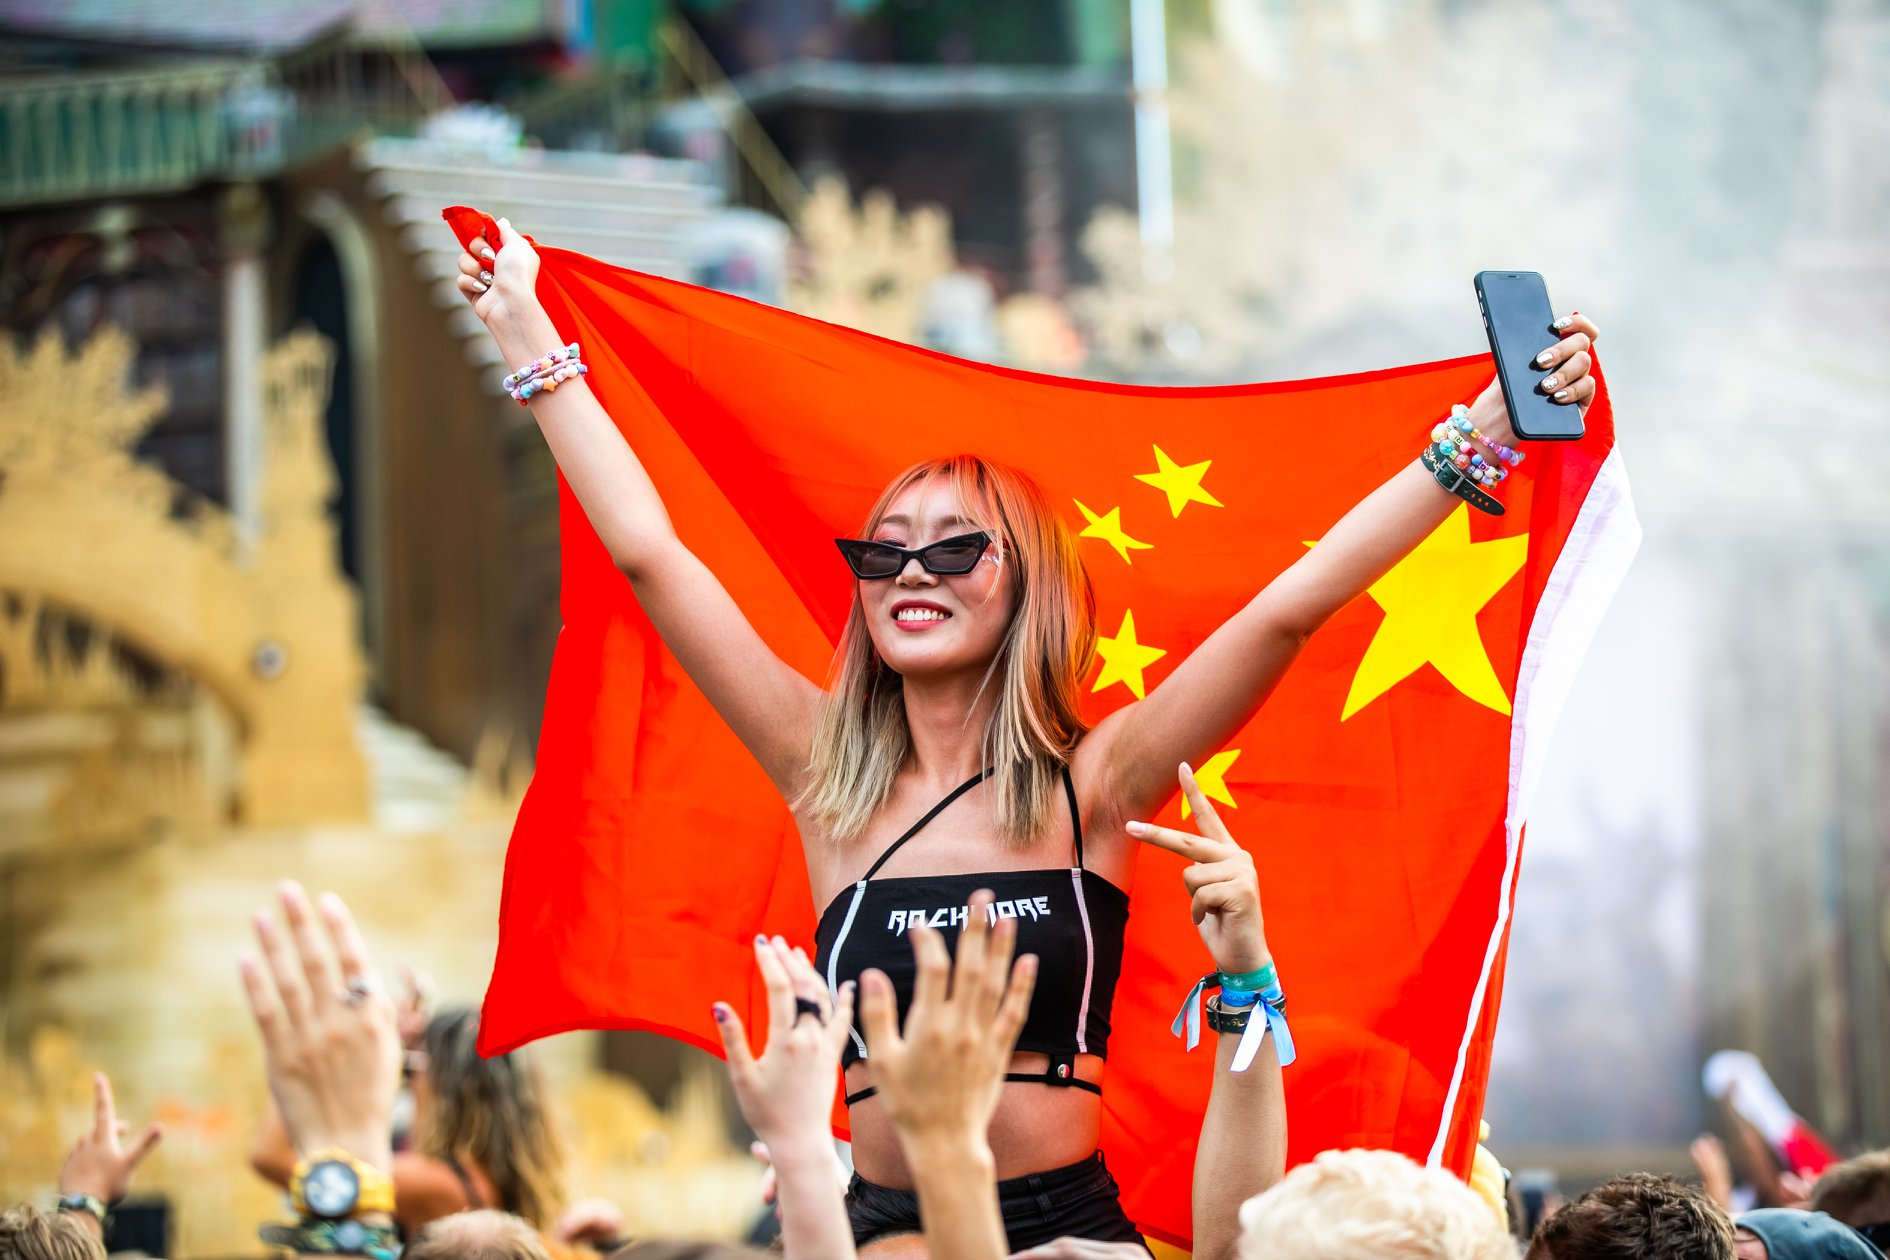 Why You Should Go To Tomorrowland, But Not Just For The Music